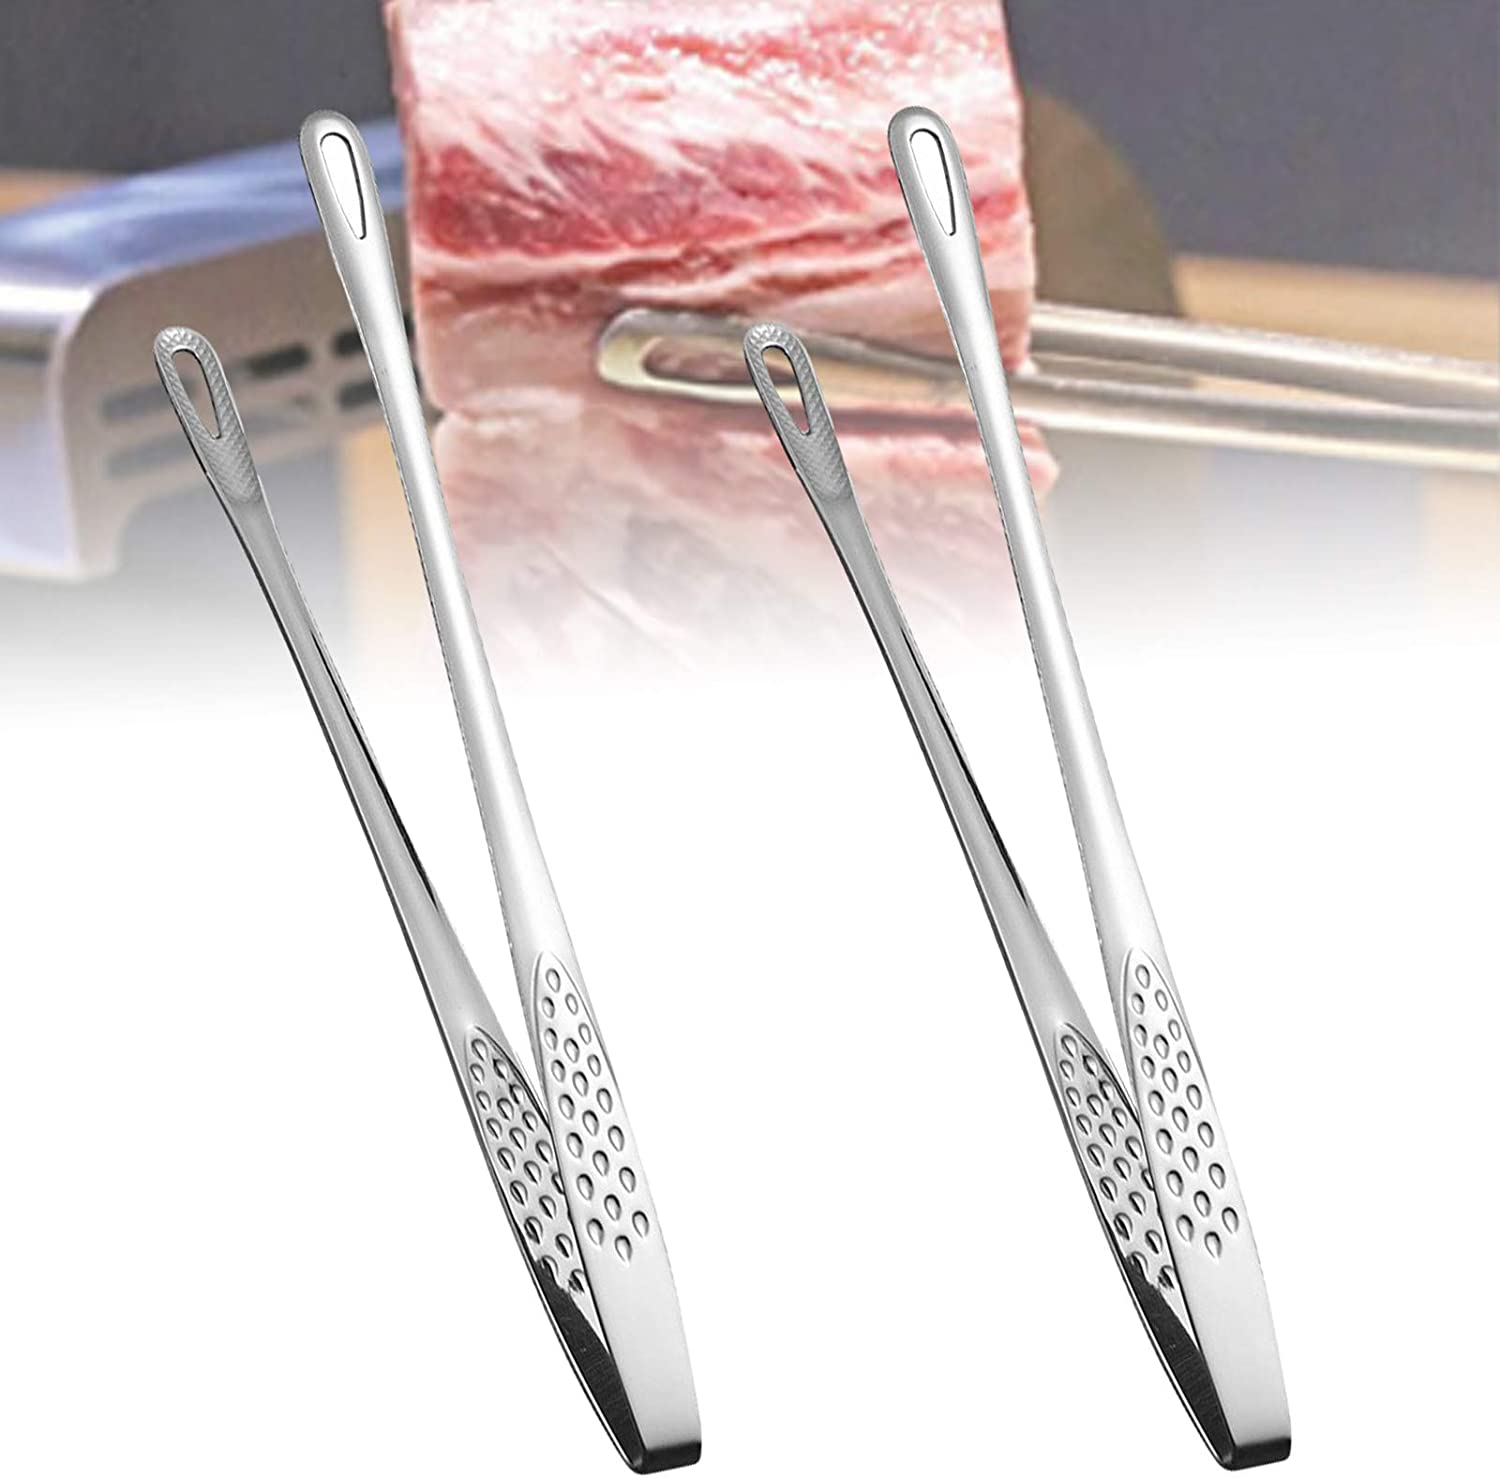 2 Pcs Stainless Steel Food Tongs for Cooking, 11 Inch Toaster Tongs, Cooking Tweezers, Kitchen Tool Anti-Heat Bread Clip Pastry Salad Clamp Barbecue Kitchen Tongs